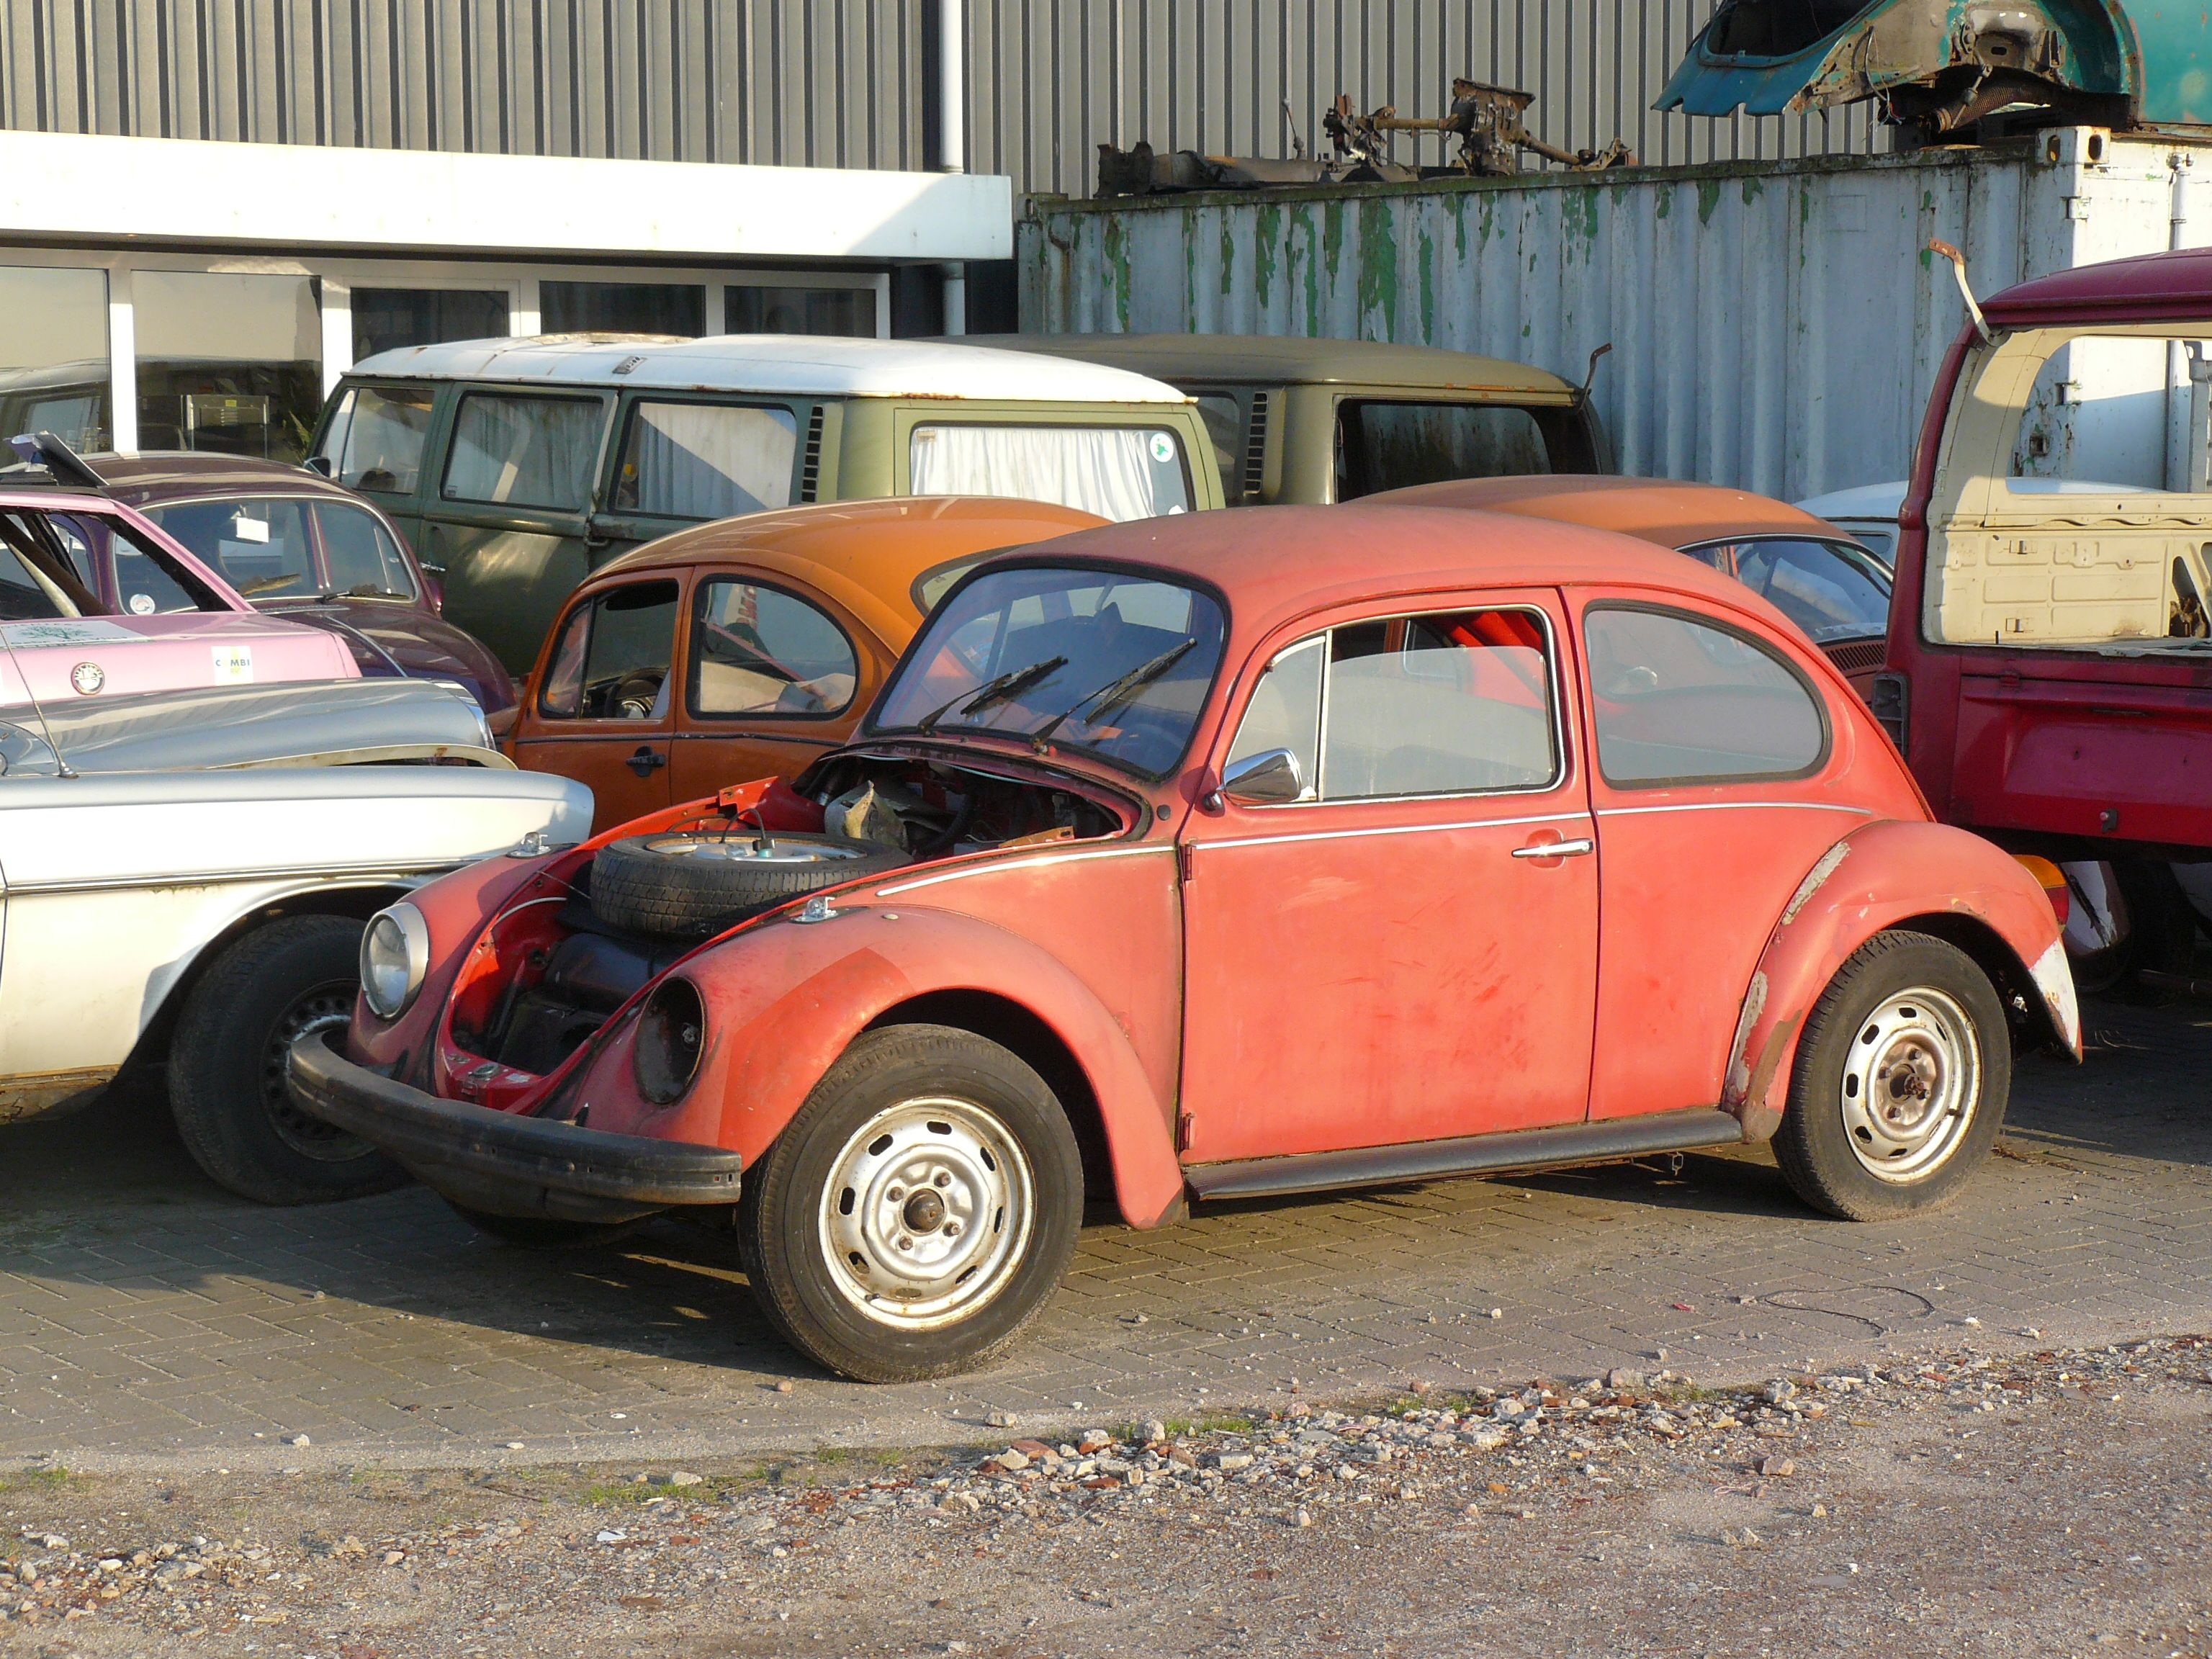 Scrap For Cash specialise in free and fast scrap car removals ...